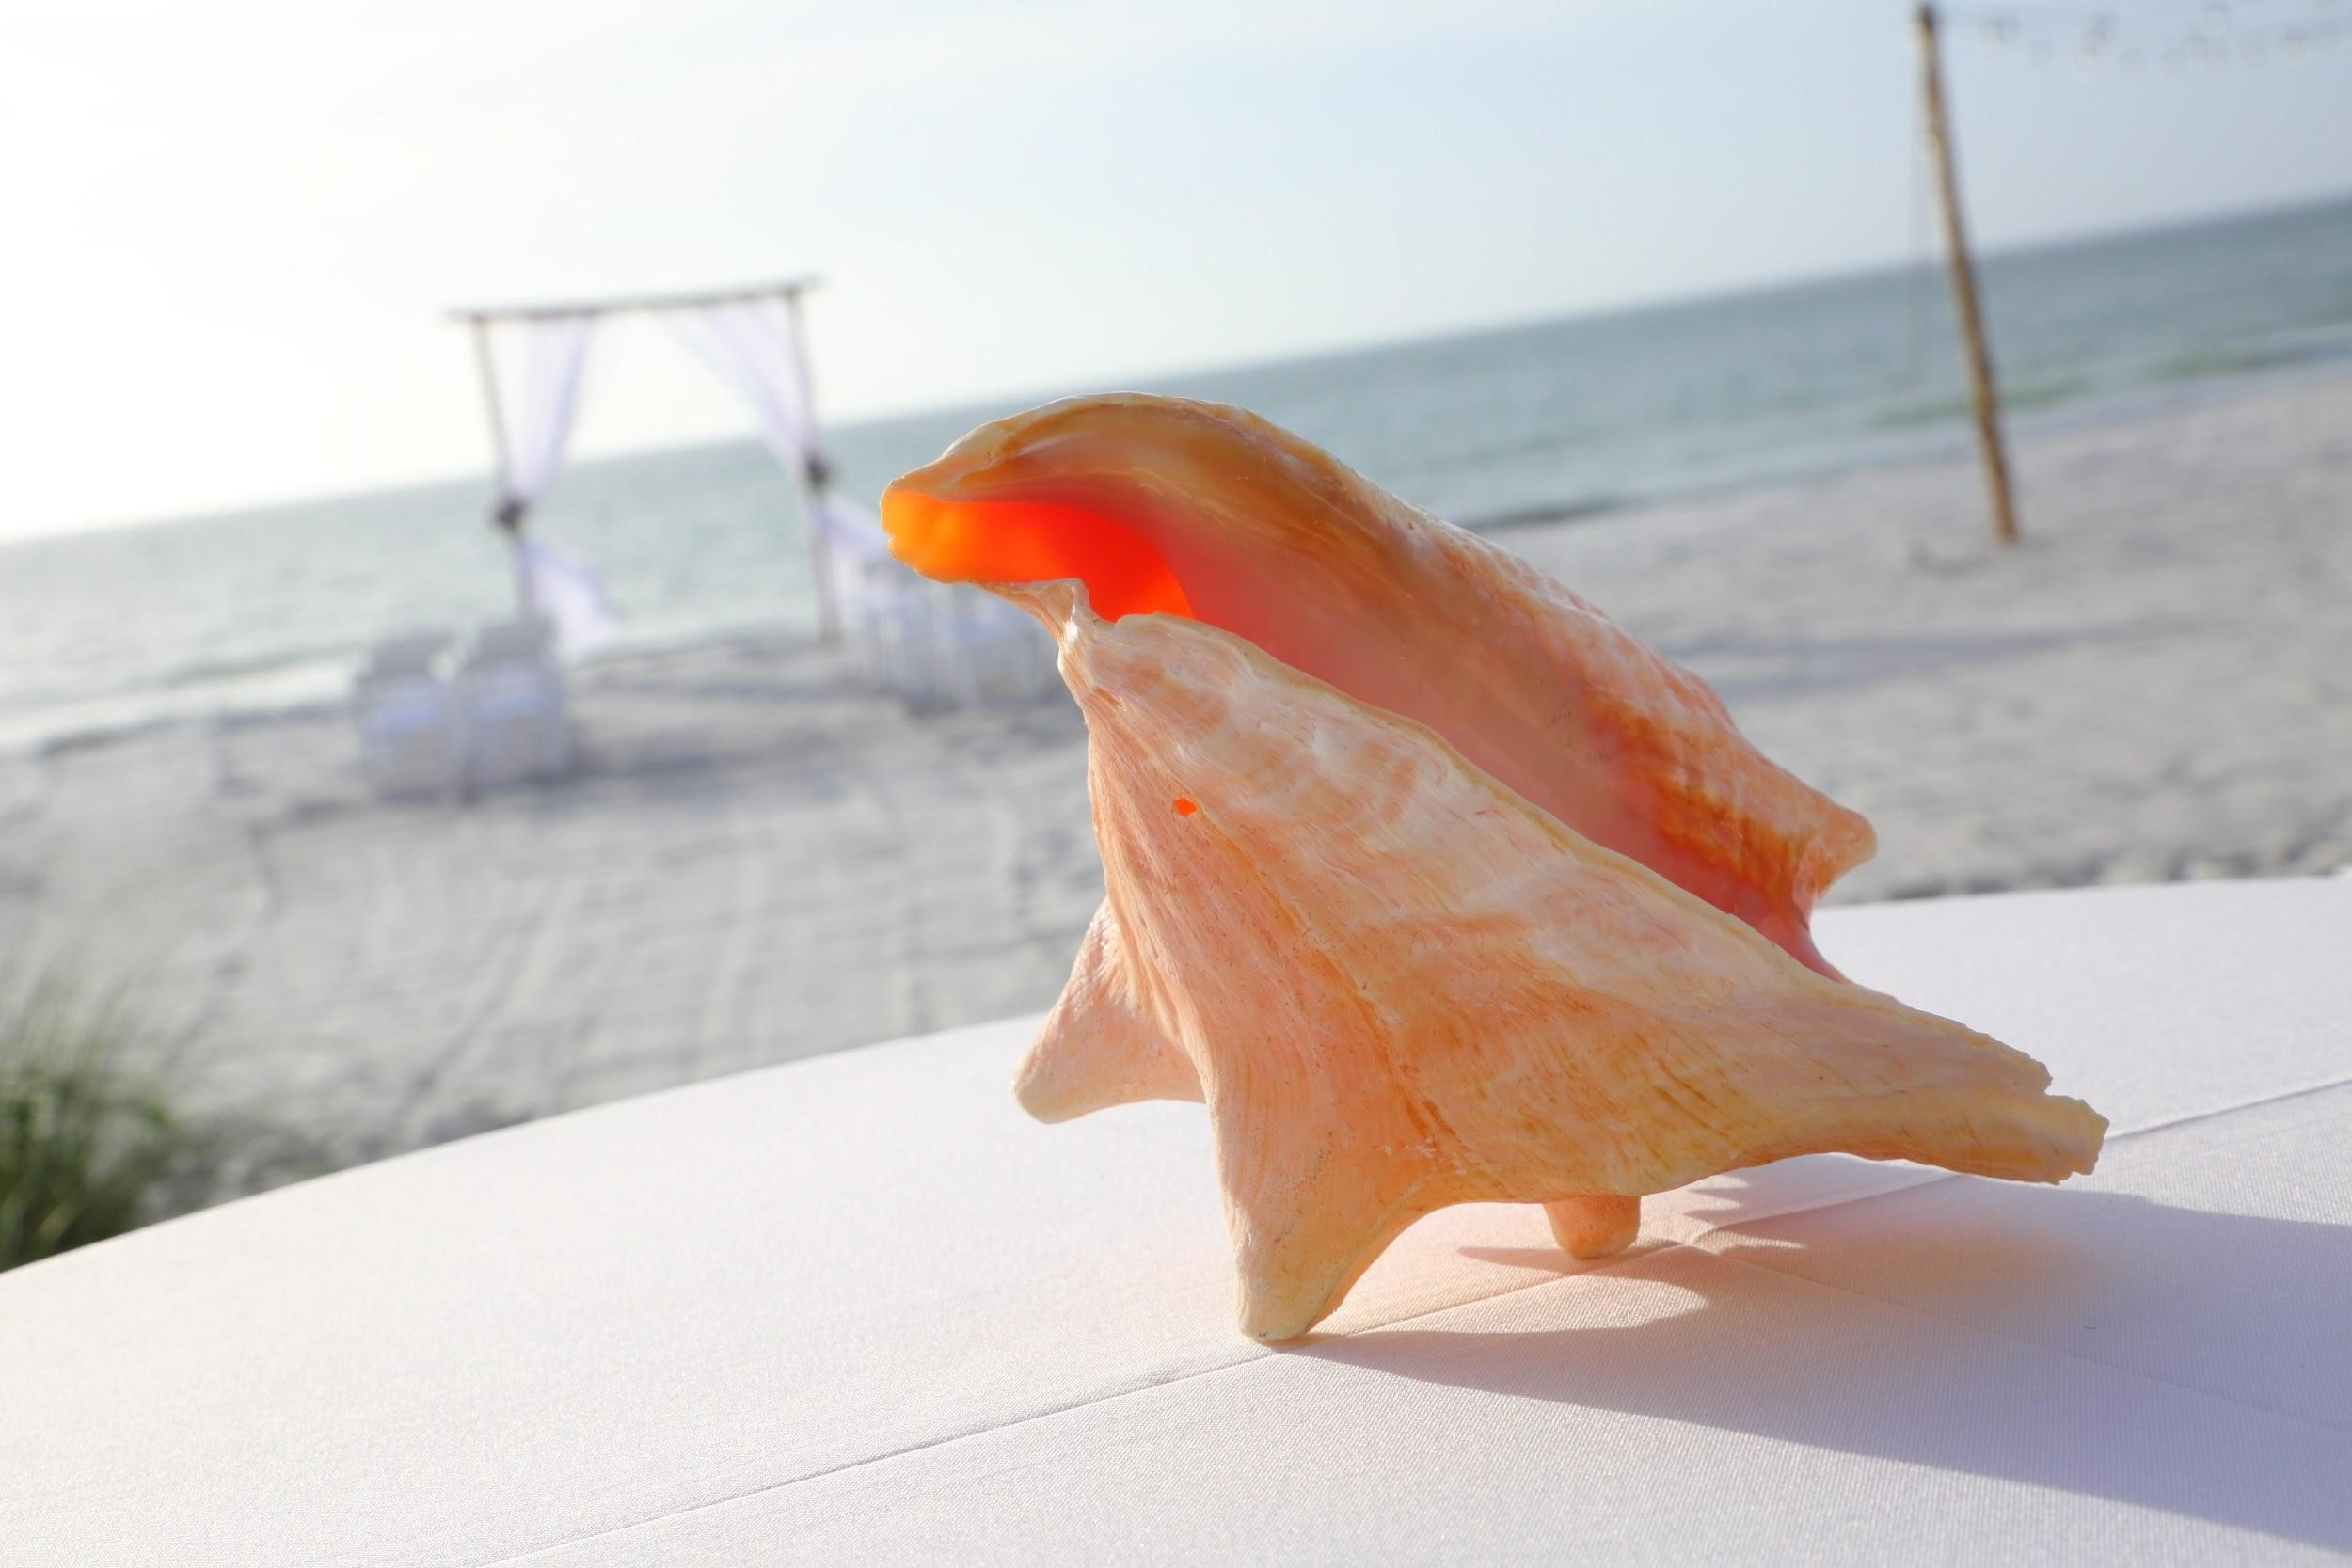 A peach seashell on the welcome table